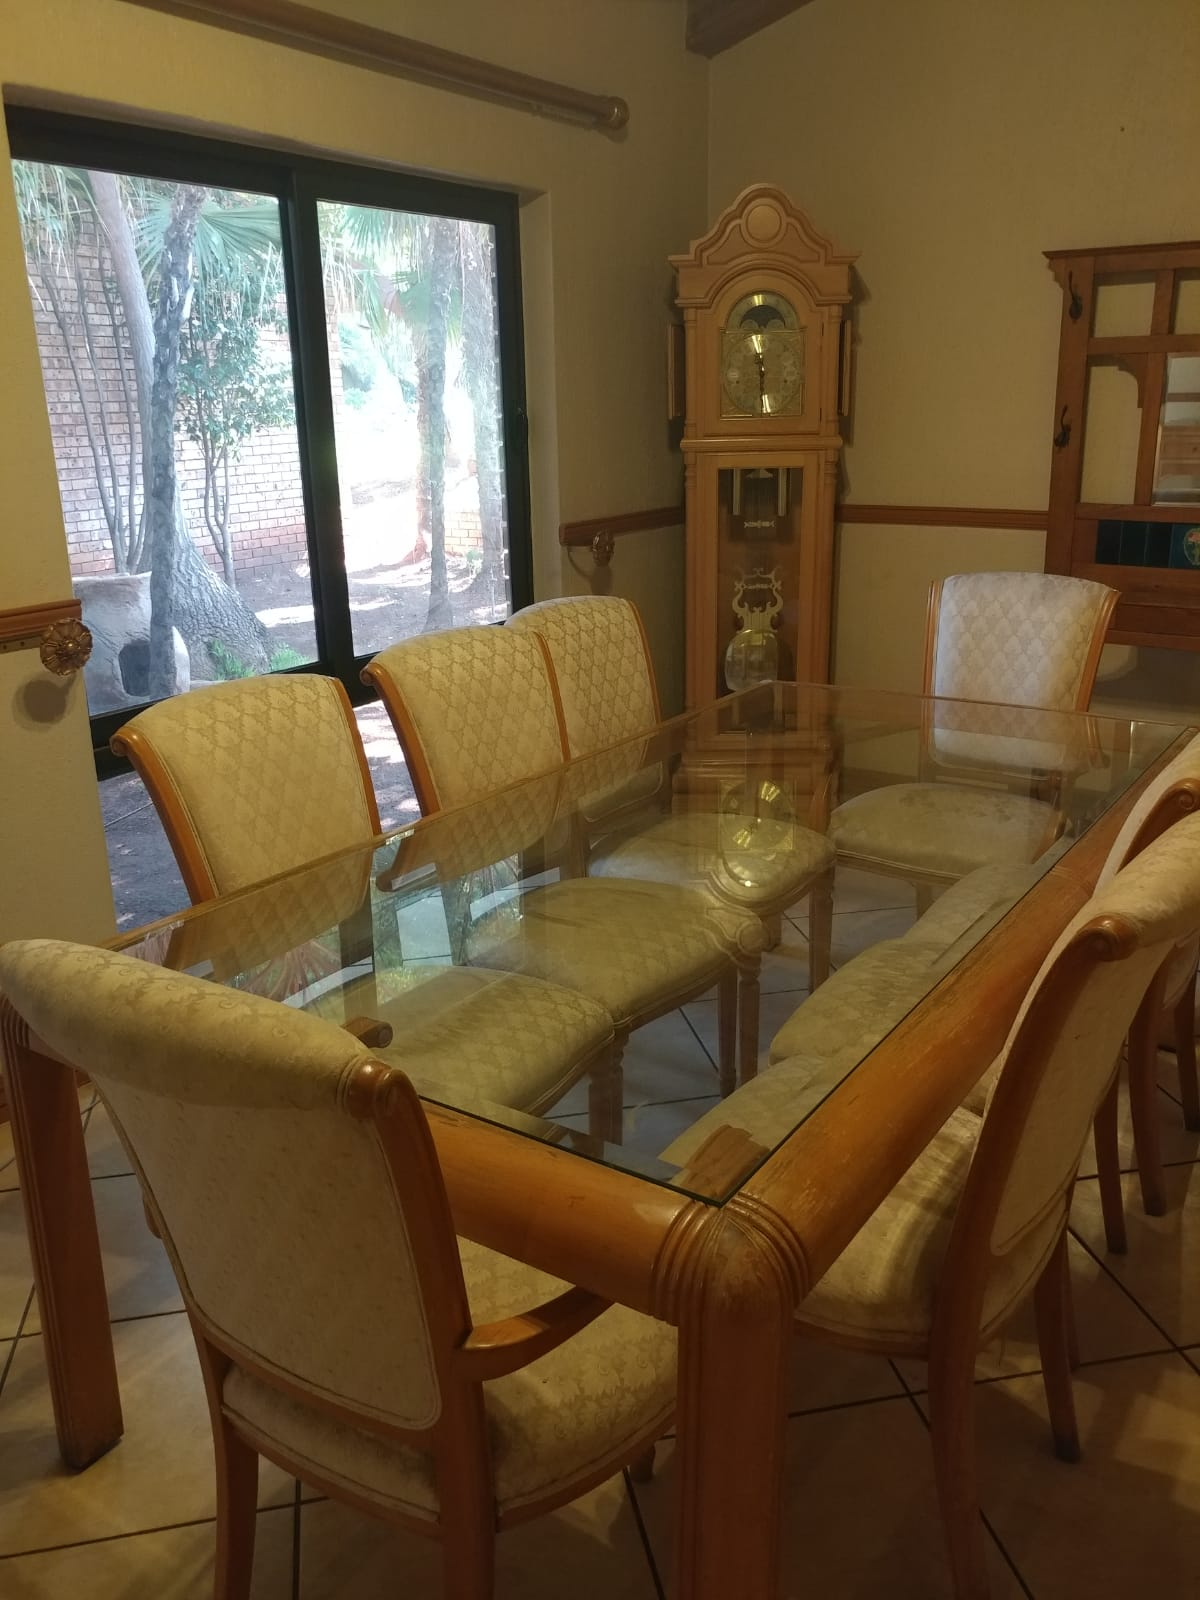 used dining room table for sale | DINING ROOM TABLE WITH 8 CHAIRS FOR SALE | Junk Mail